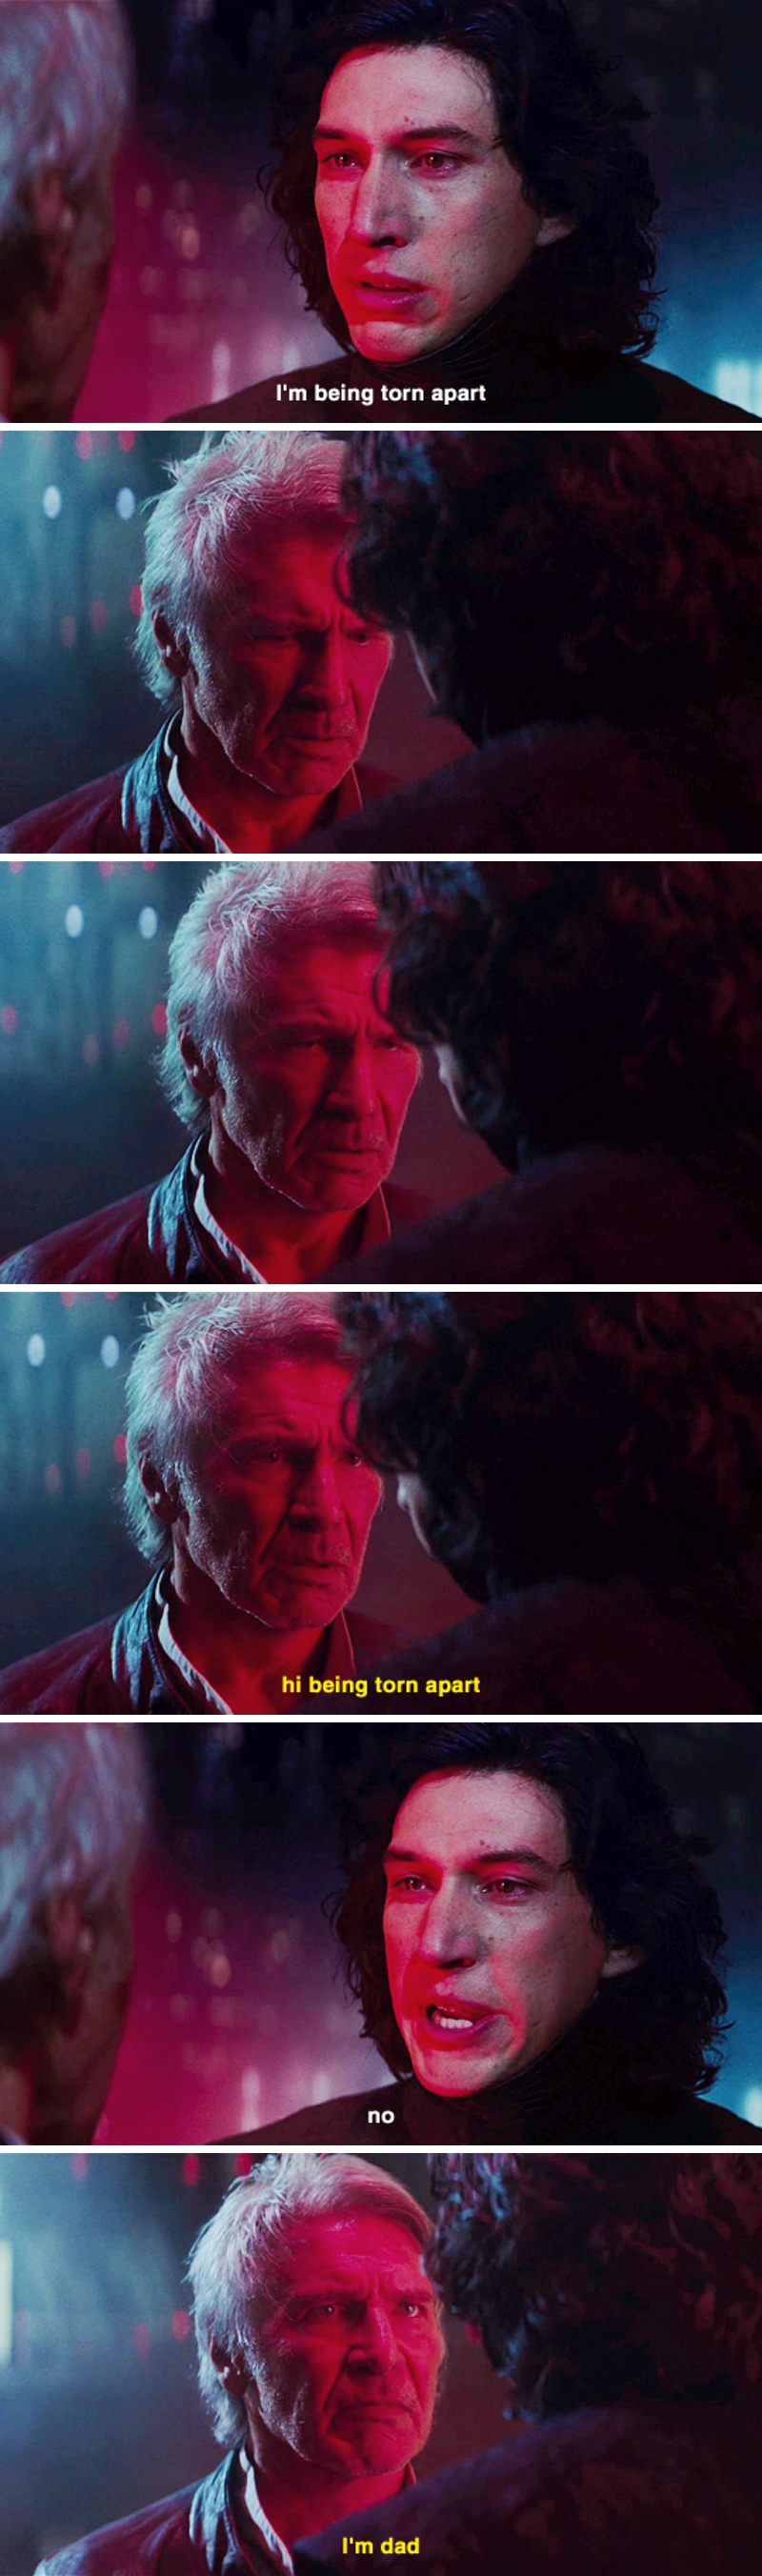 han solo dad jokes turned kylo ren to the dark side